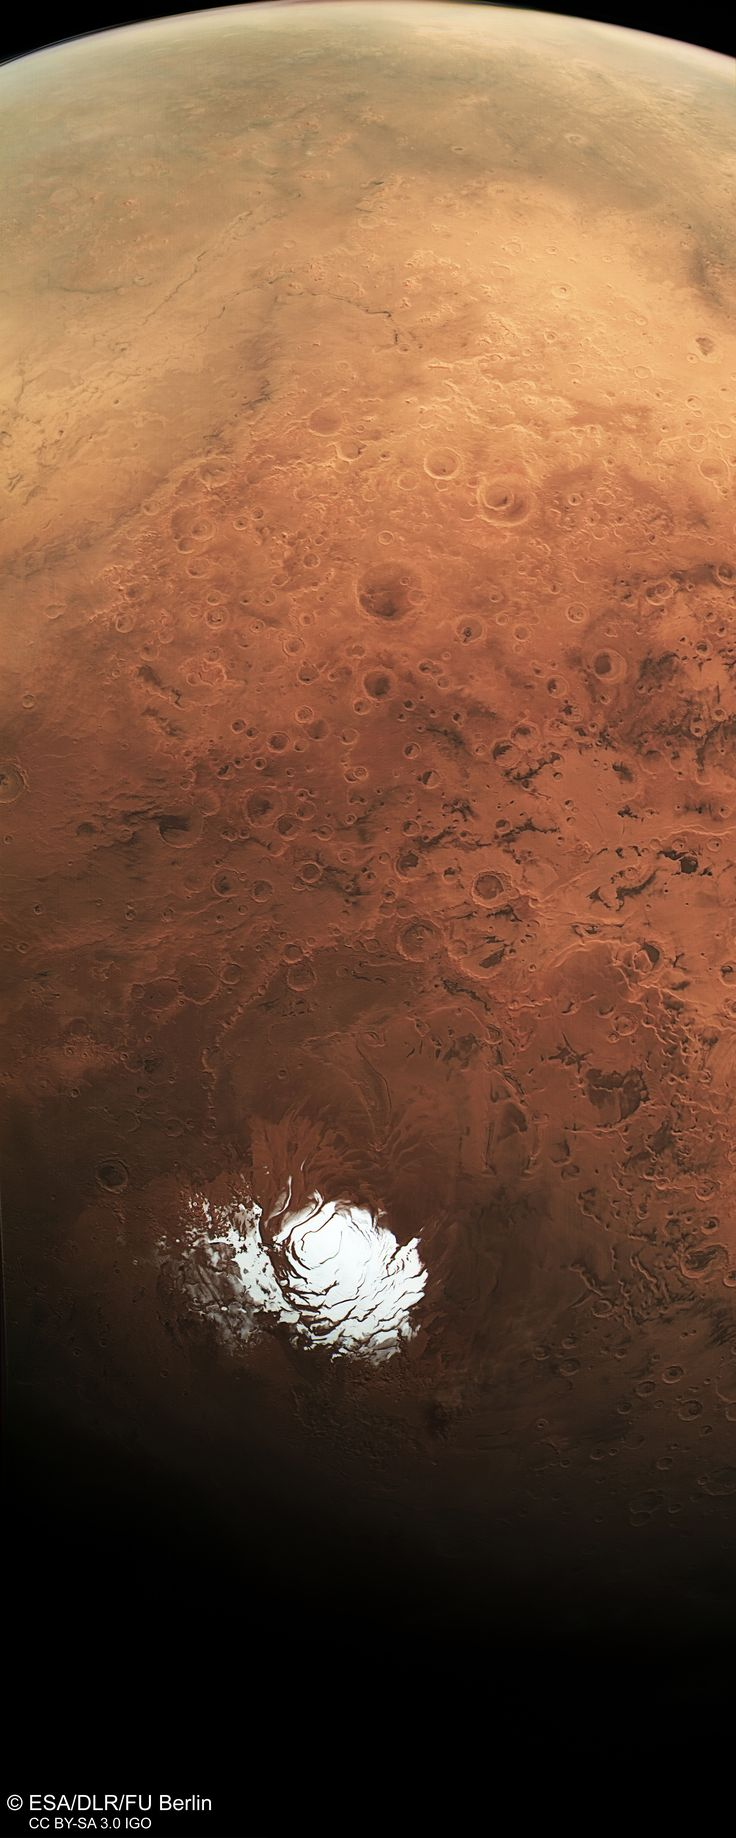 This sweeping view by ESA%u2019s Mars Express extends from the planet%u2019s south polar ice cap and across its cratered highlands to the Hellas Basin (top left) and beyond. <br />